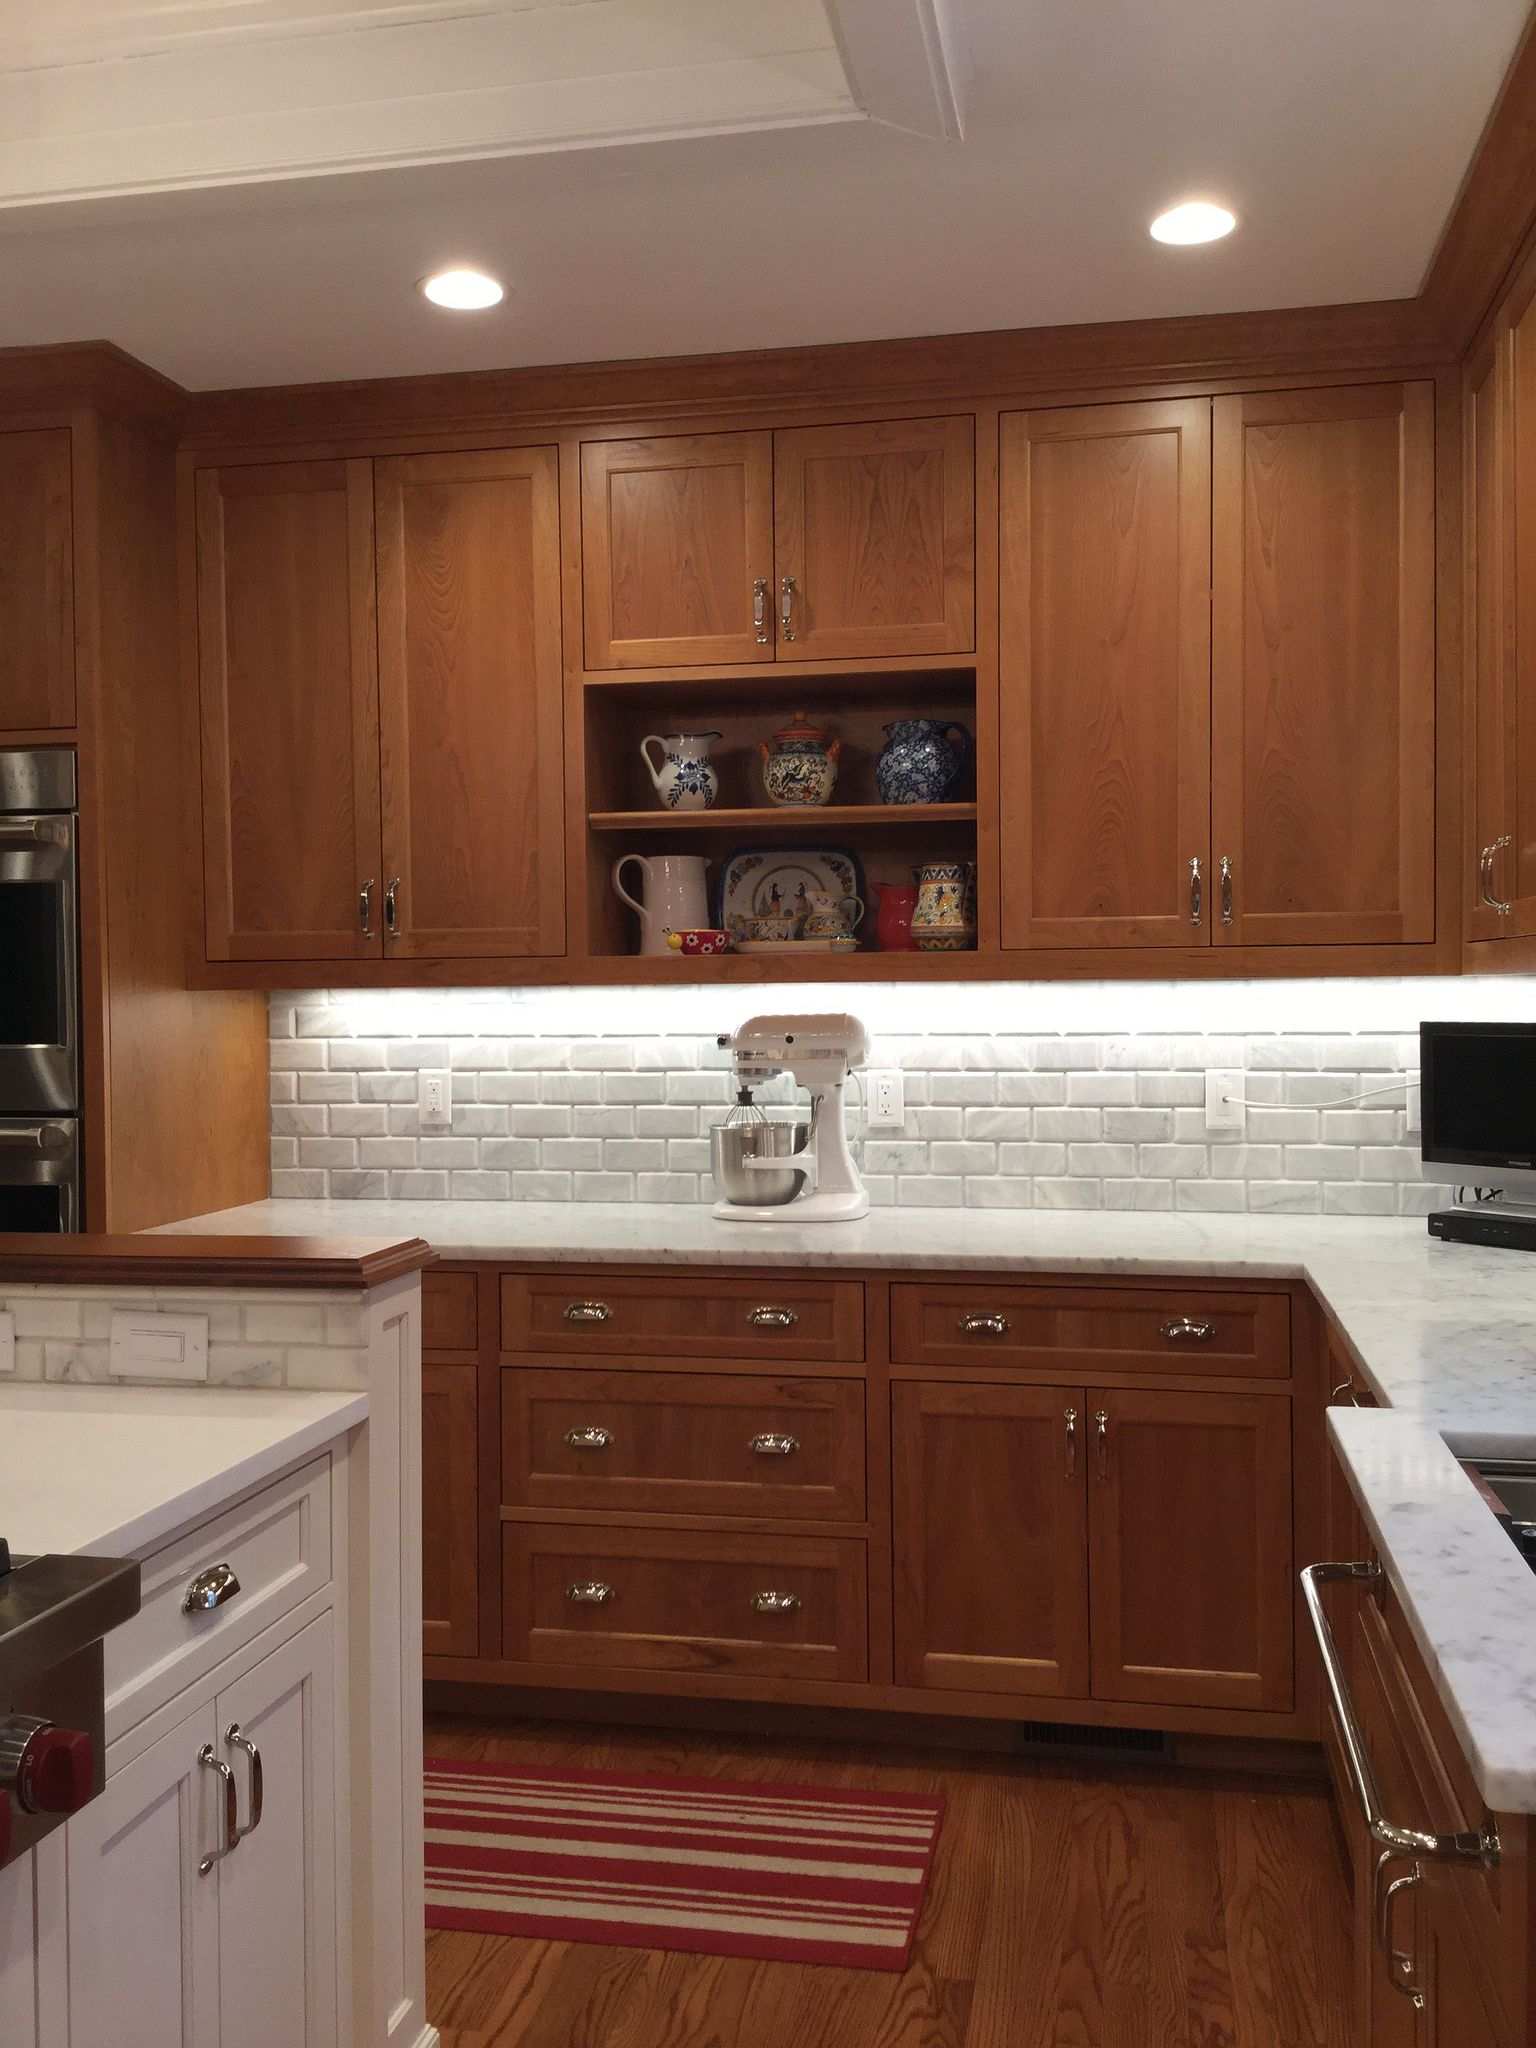 Can You Paint Corian Countertops Cherry Kitchen Marble Counters 2 Pinterest Cherry